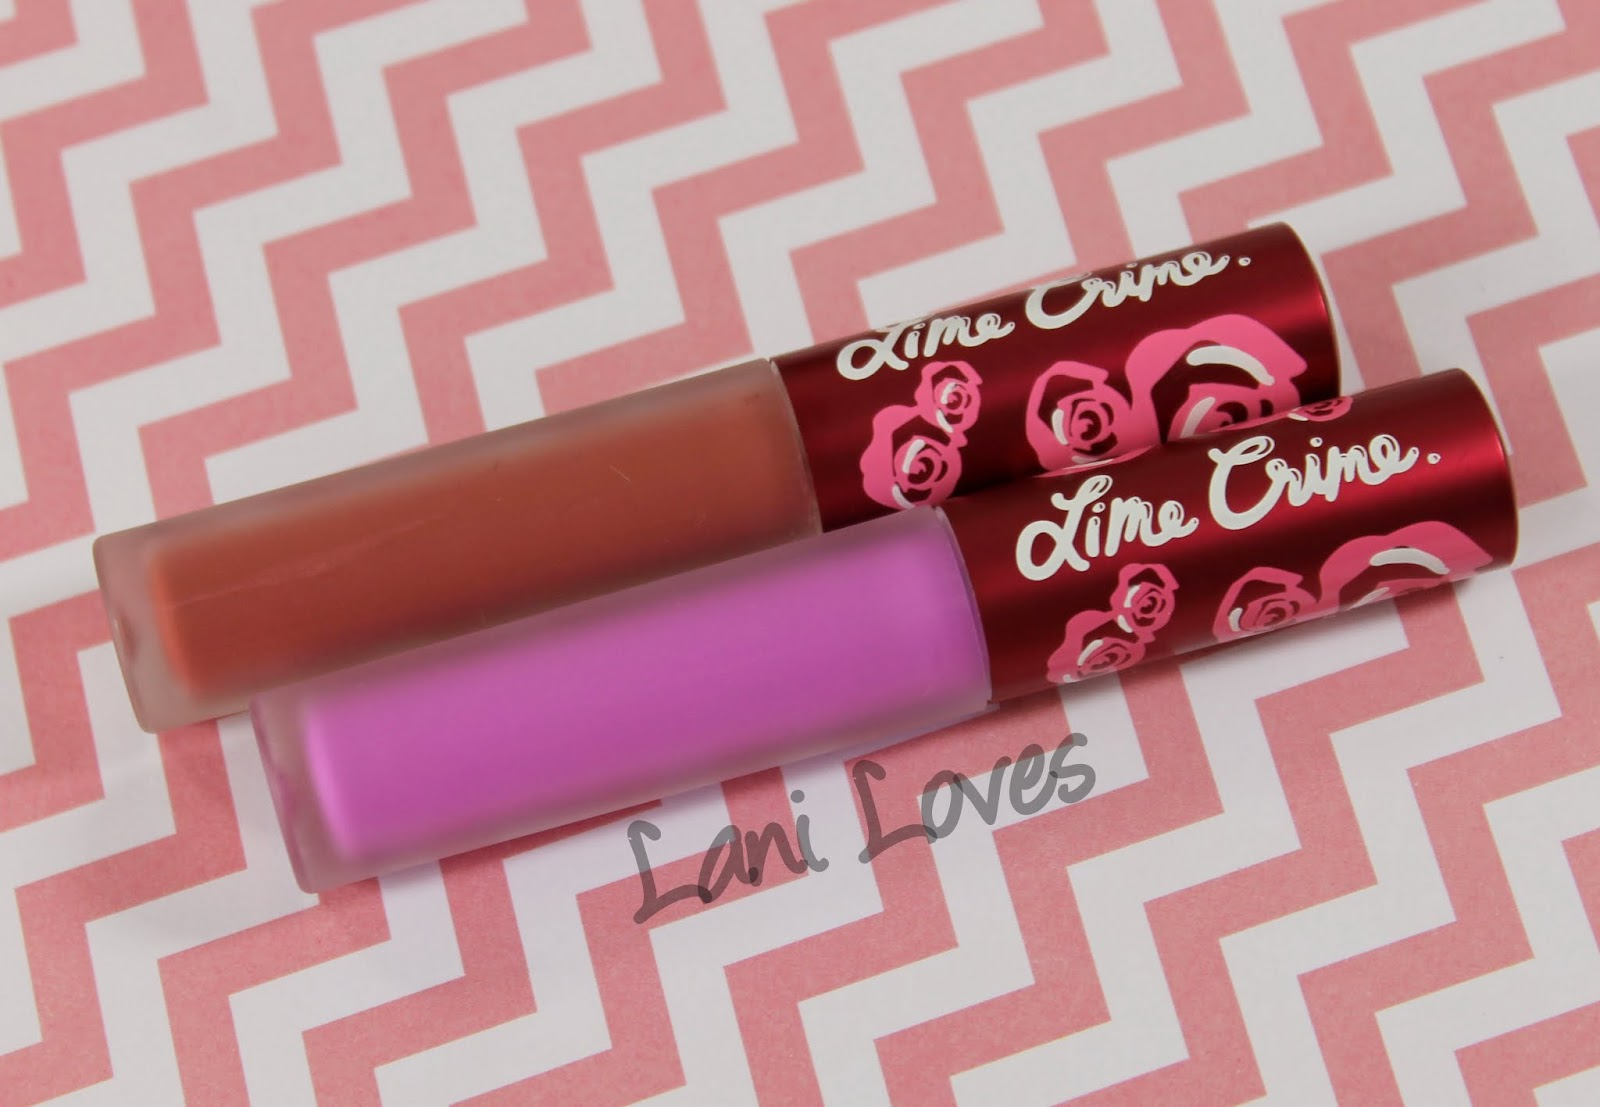 Lime Crime Velvetines - Riot and Rave Swatches & Review